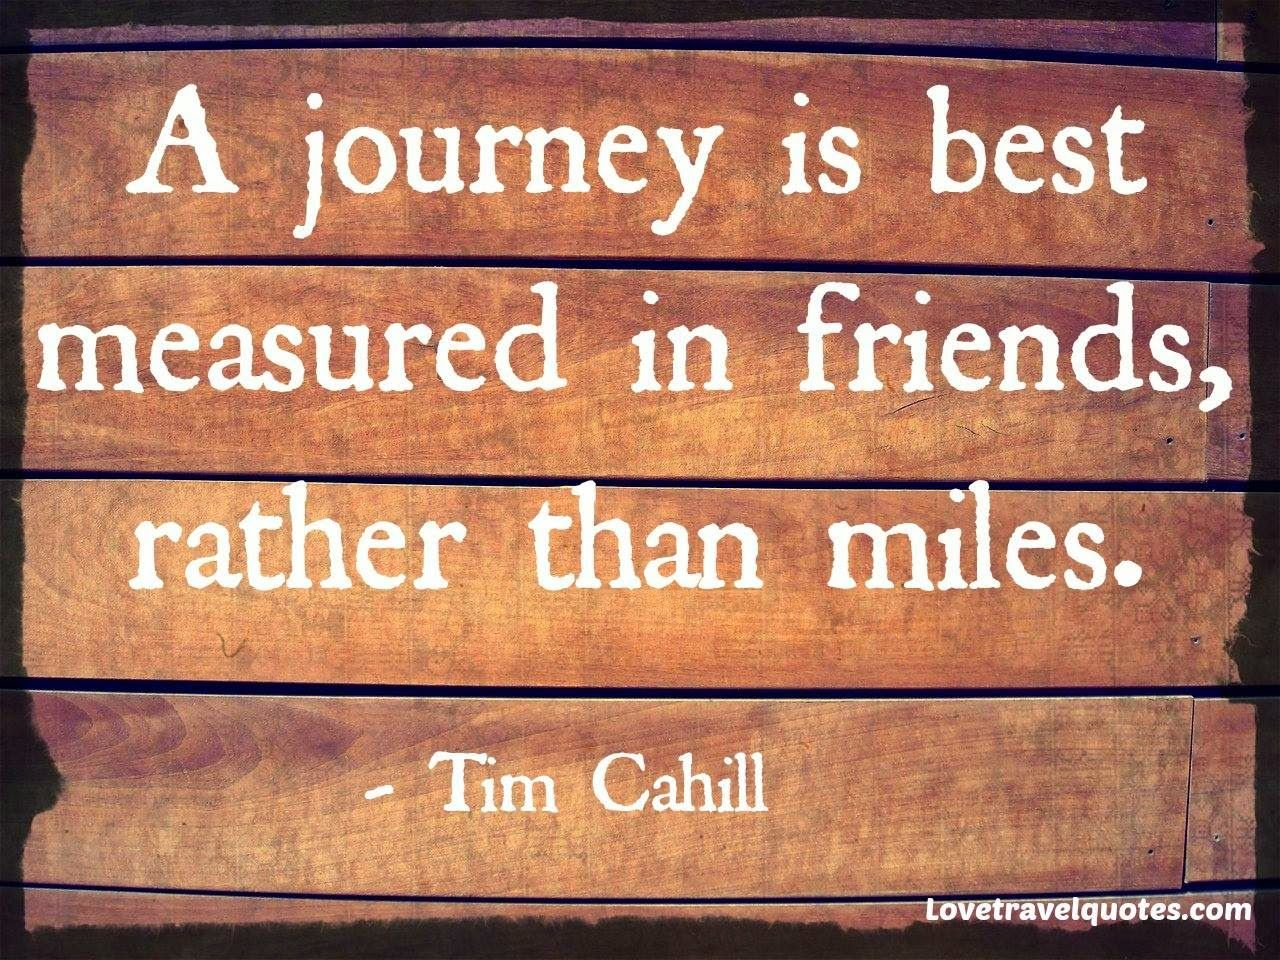 "Quotes About Journey Of Friendship A Journey Is Best Measured In Friends Rather Than Miles.""  Tim"